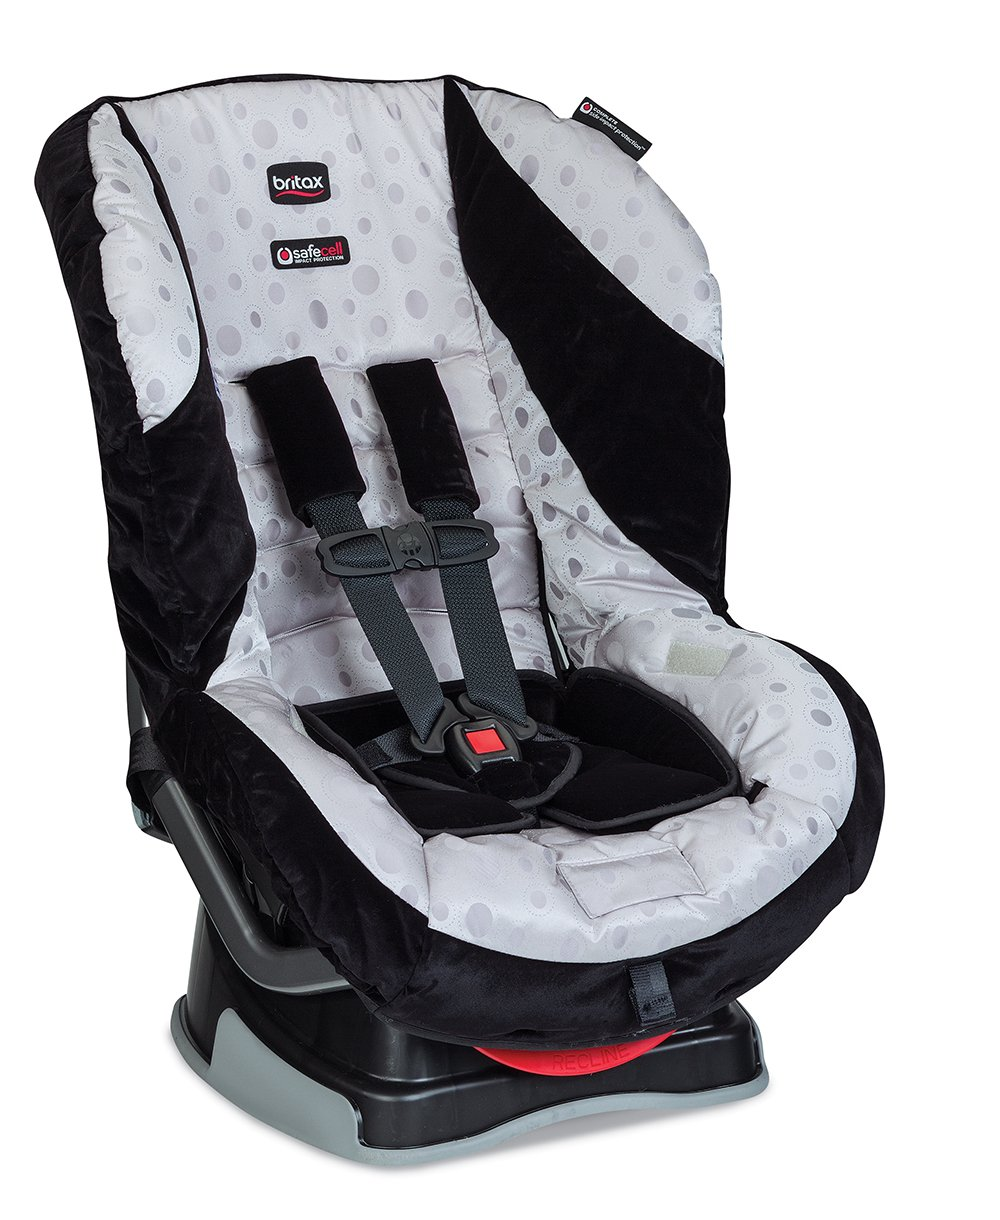 Britax Roundabout G41 Convertible Car Seat Silverlake By USA Amazonca Baby